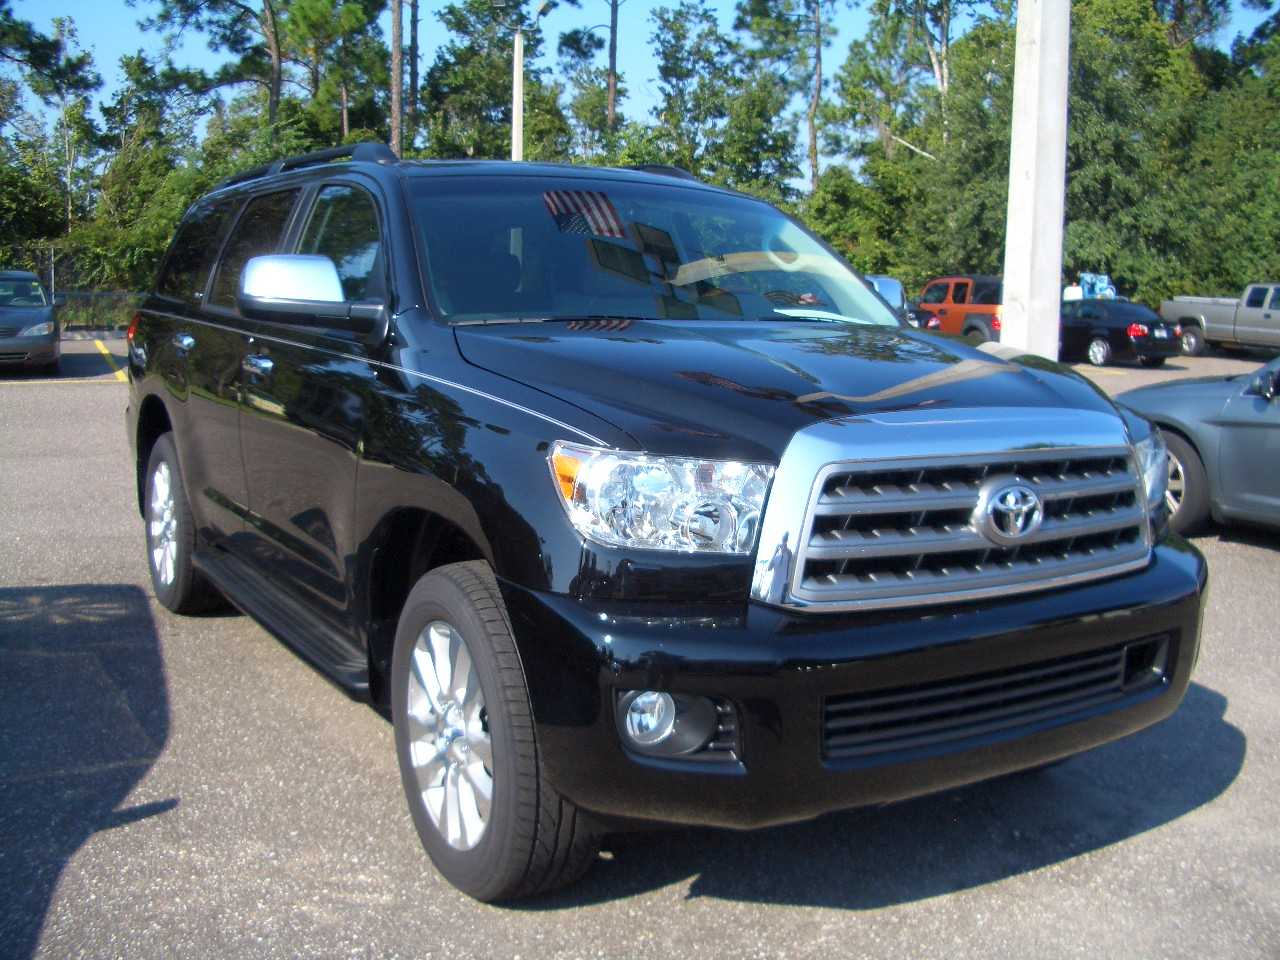 used 2009 toyota sequoia pictures gasoline automatic for sale. Black Bedroom Furniture Sets. Home Design Ideas